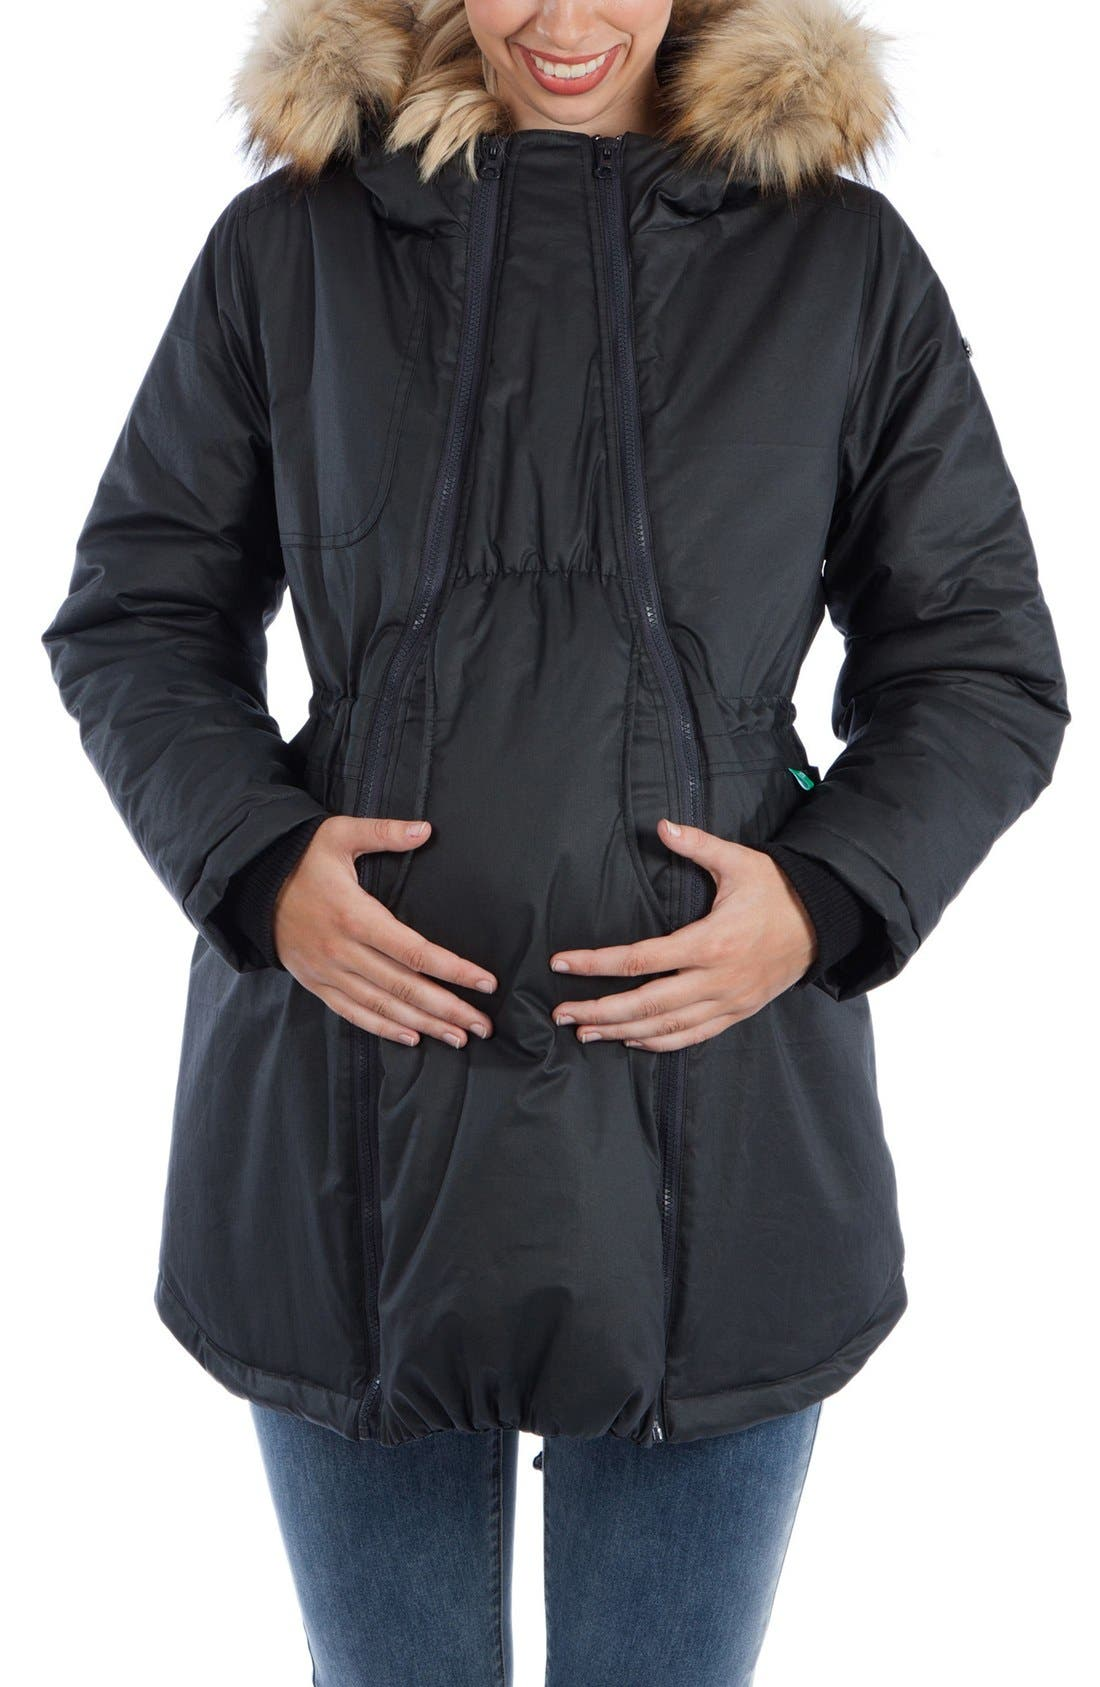 Main Image - Modern Eternity Sofia Waxed Shell Maternity Jacket with Faux Fur Trim